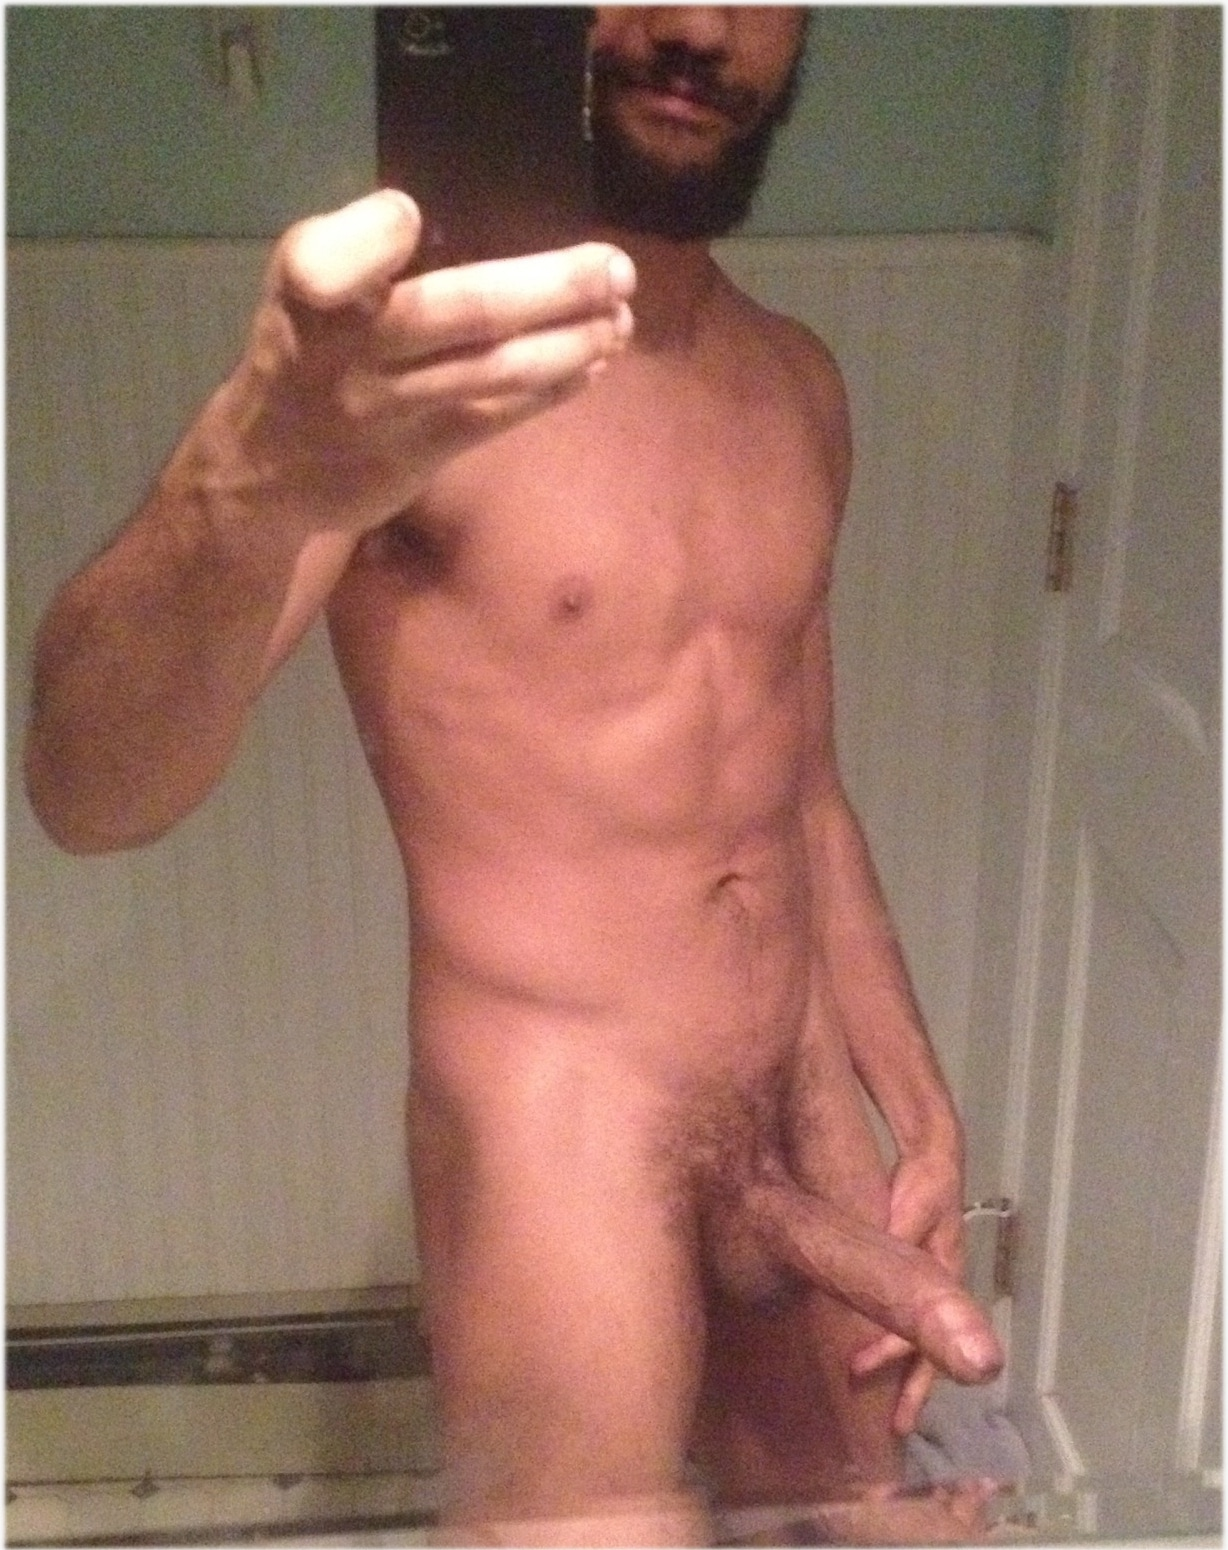 Big dick dudes.com